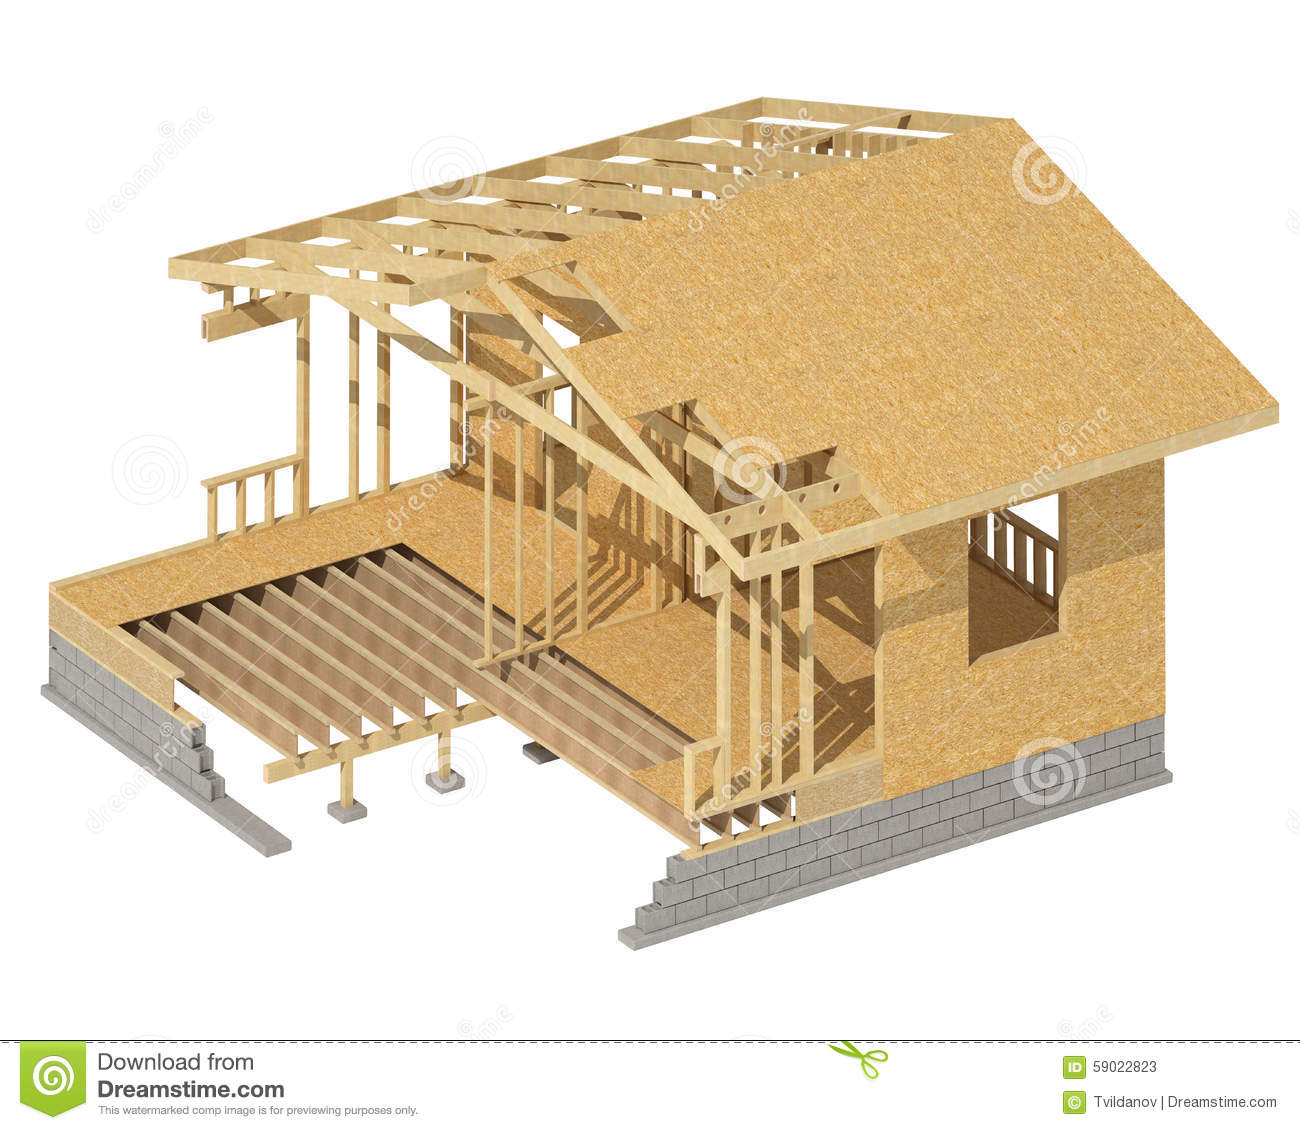 To Residential Construction New Residential Construction Home Wood Framing Stock Image